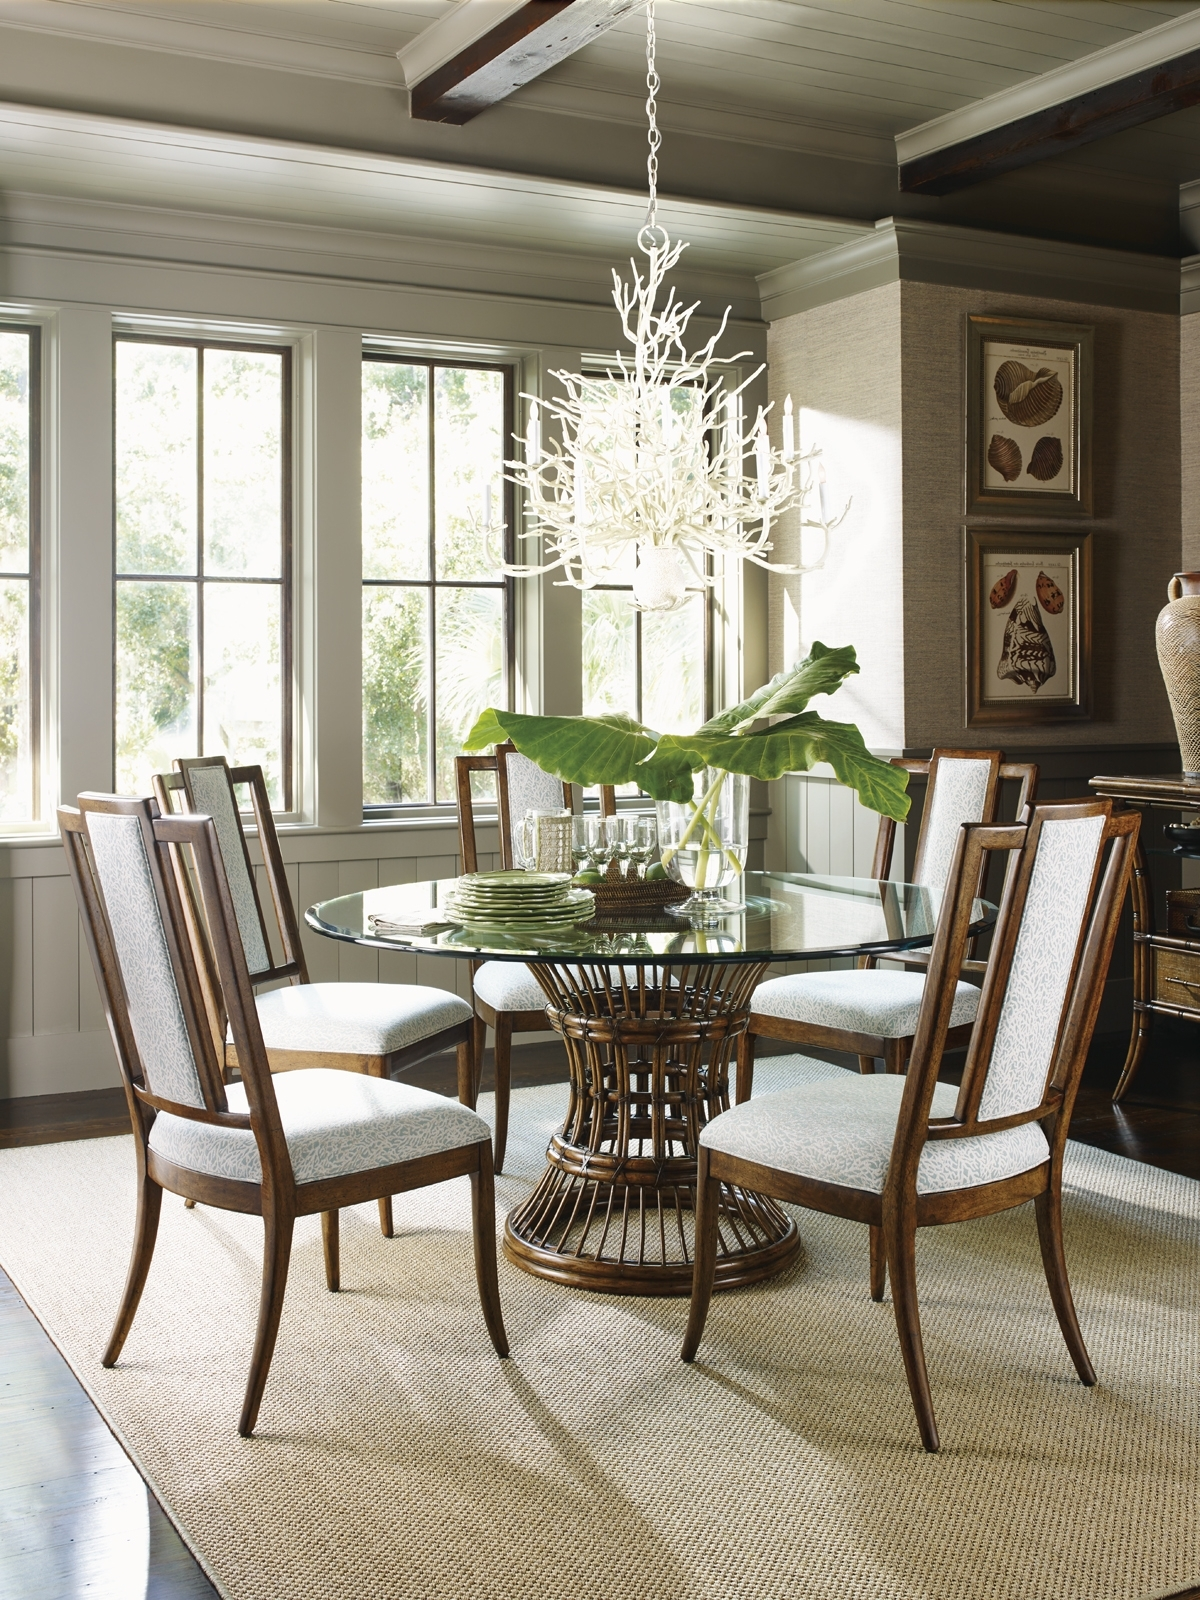 Lexington Home Brands Pertaining To Bali Dining Sets (View 15 of 25)